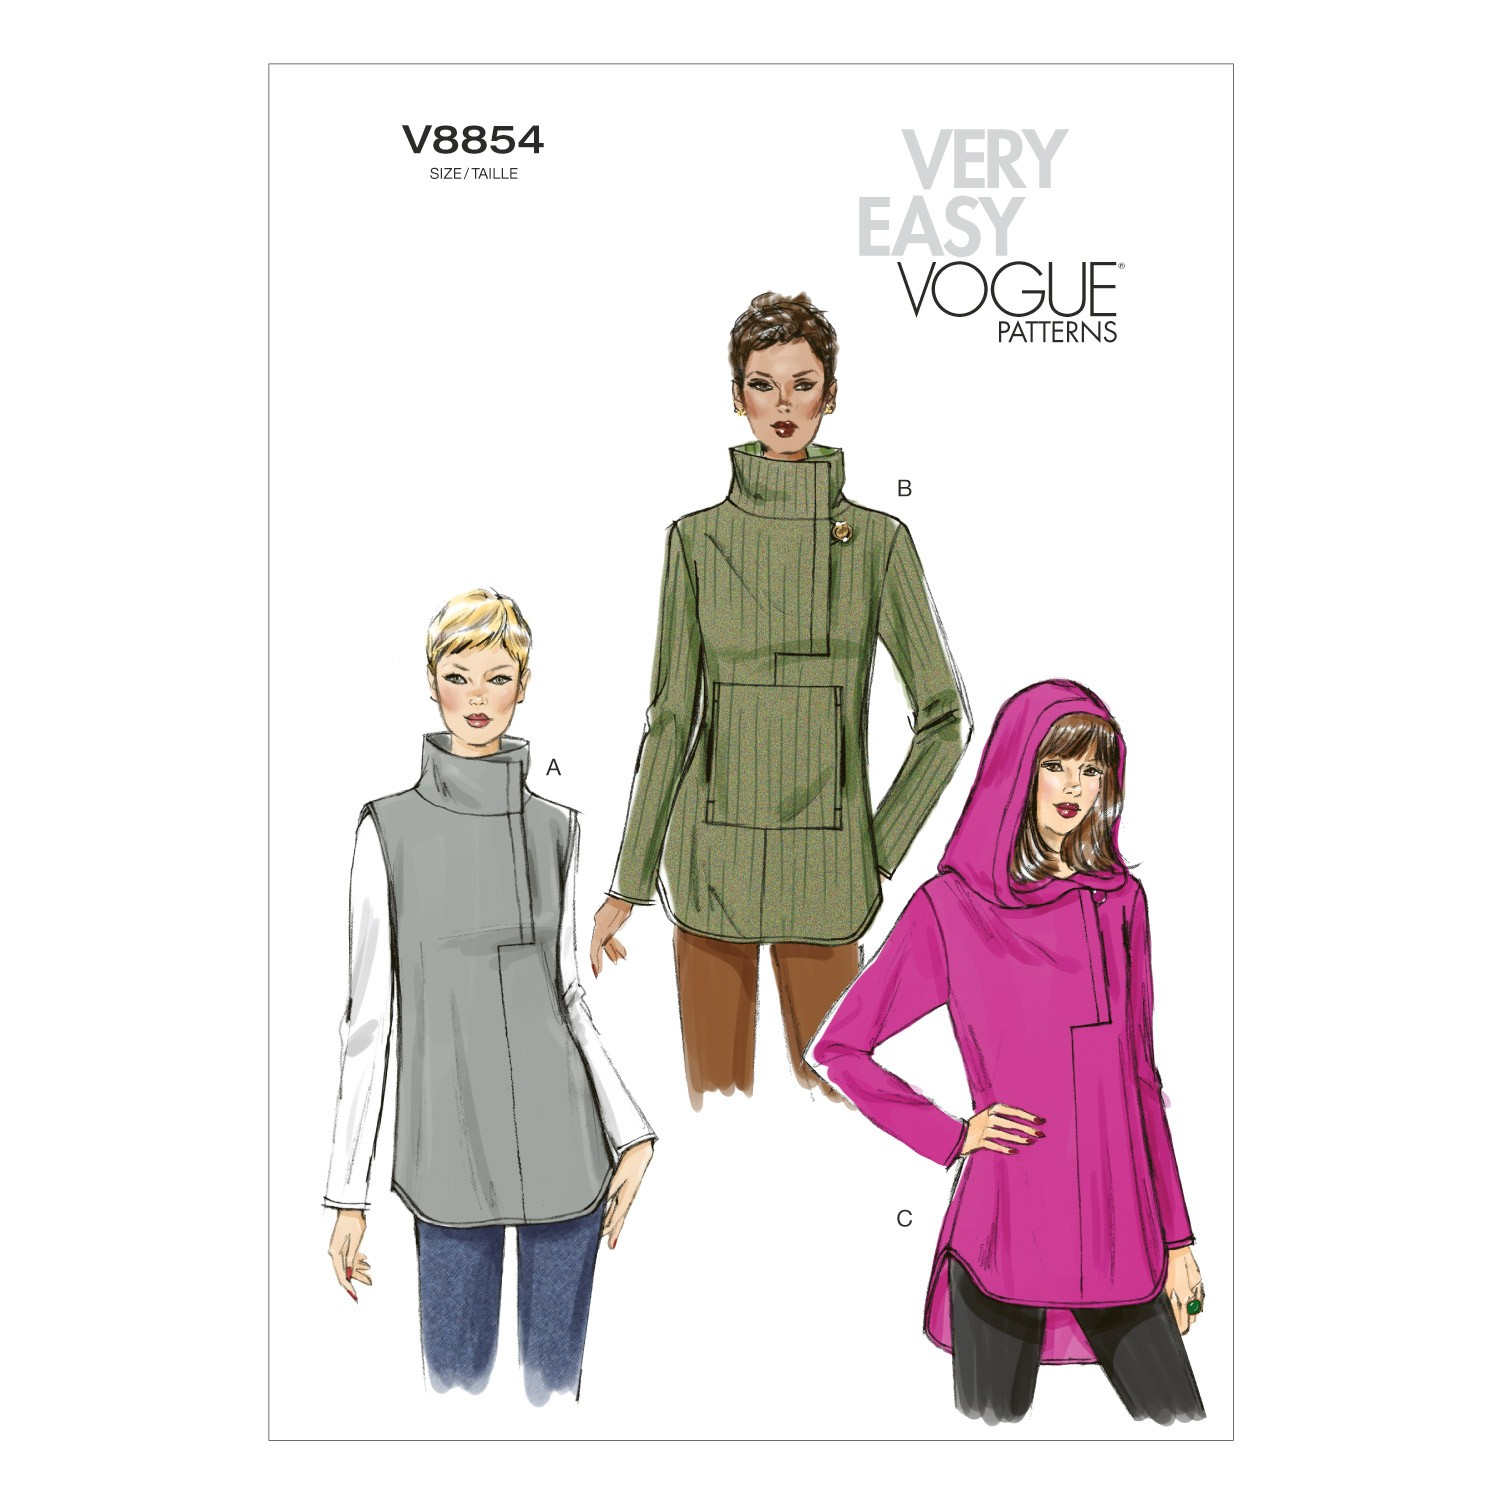 Vogue Sewing Pattern V8854 Women's Misses' Tunic